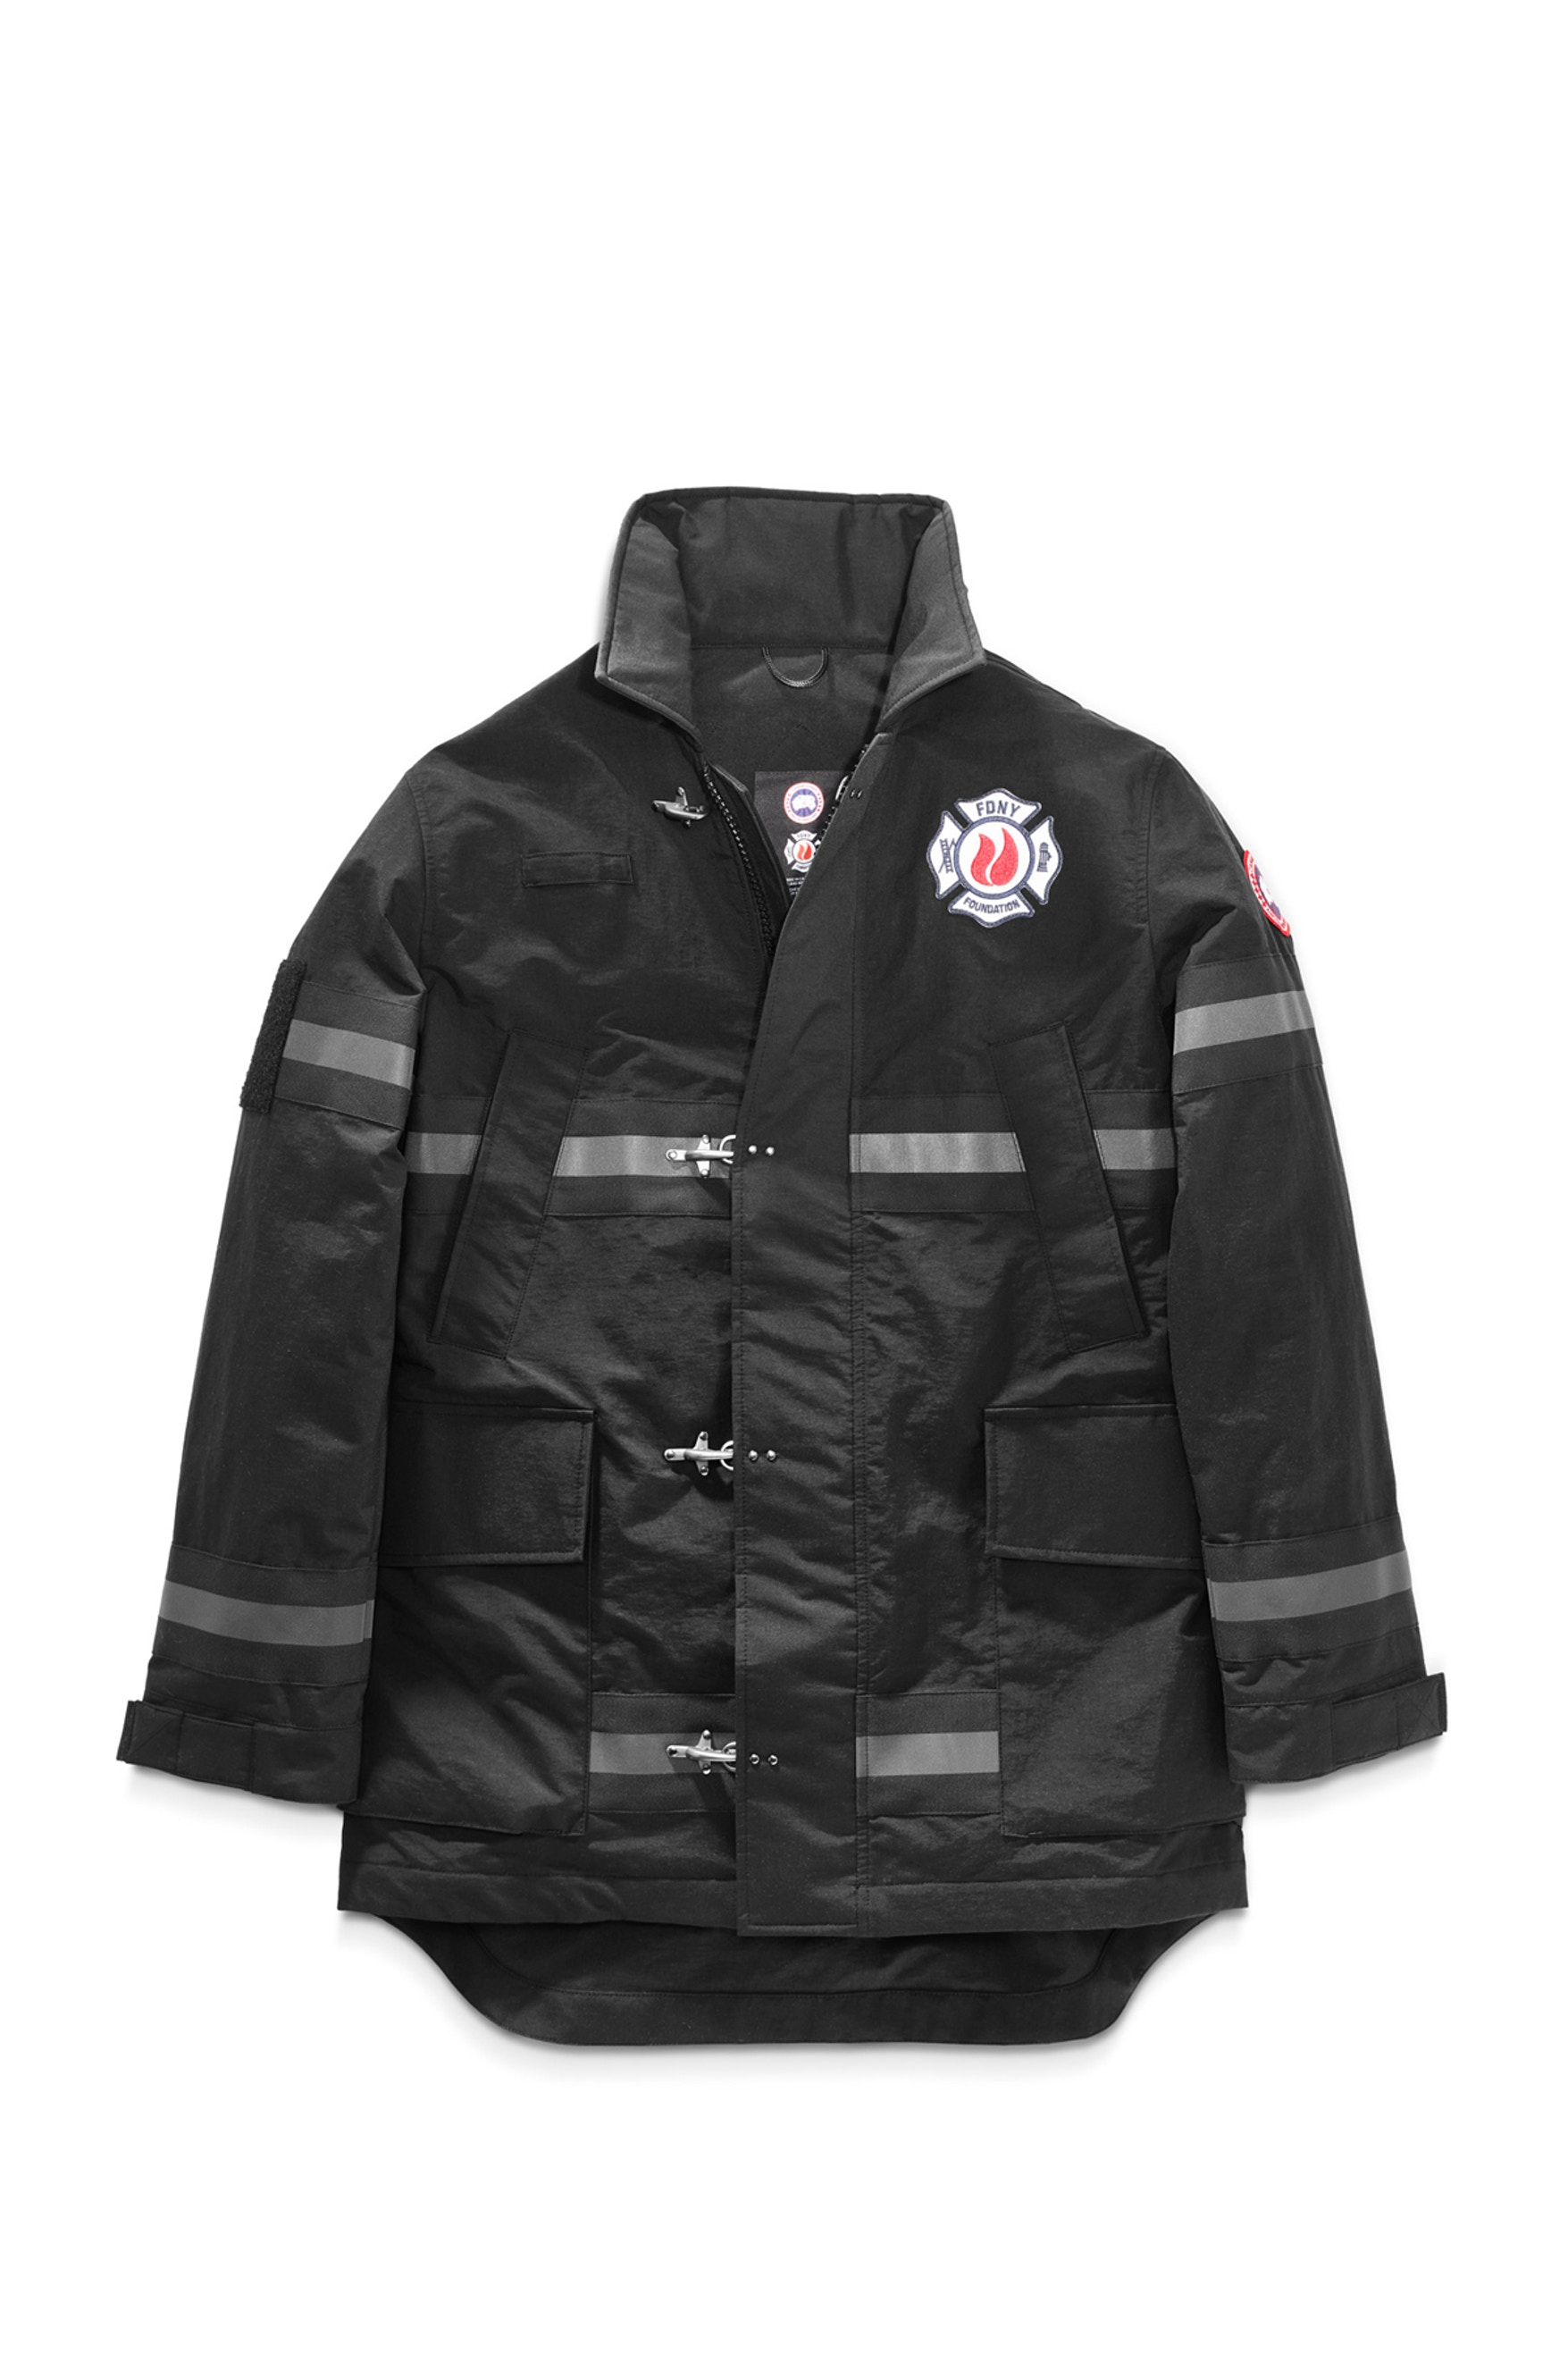 Canada Goose Joins FDNY in Collab